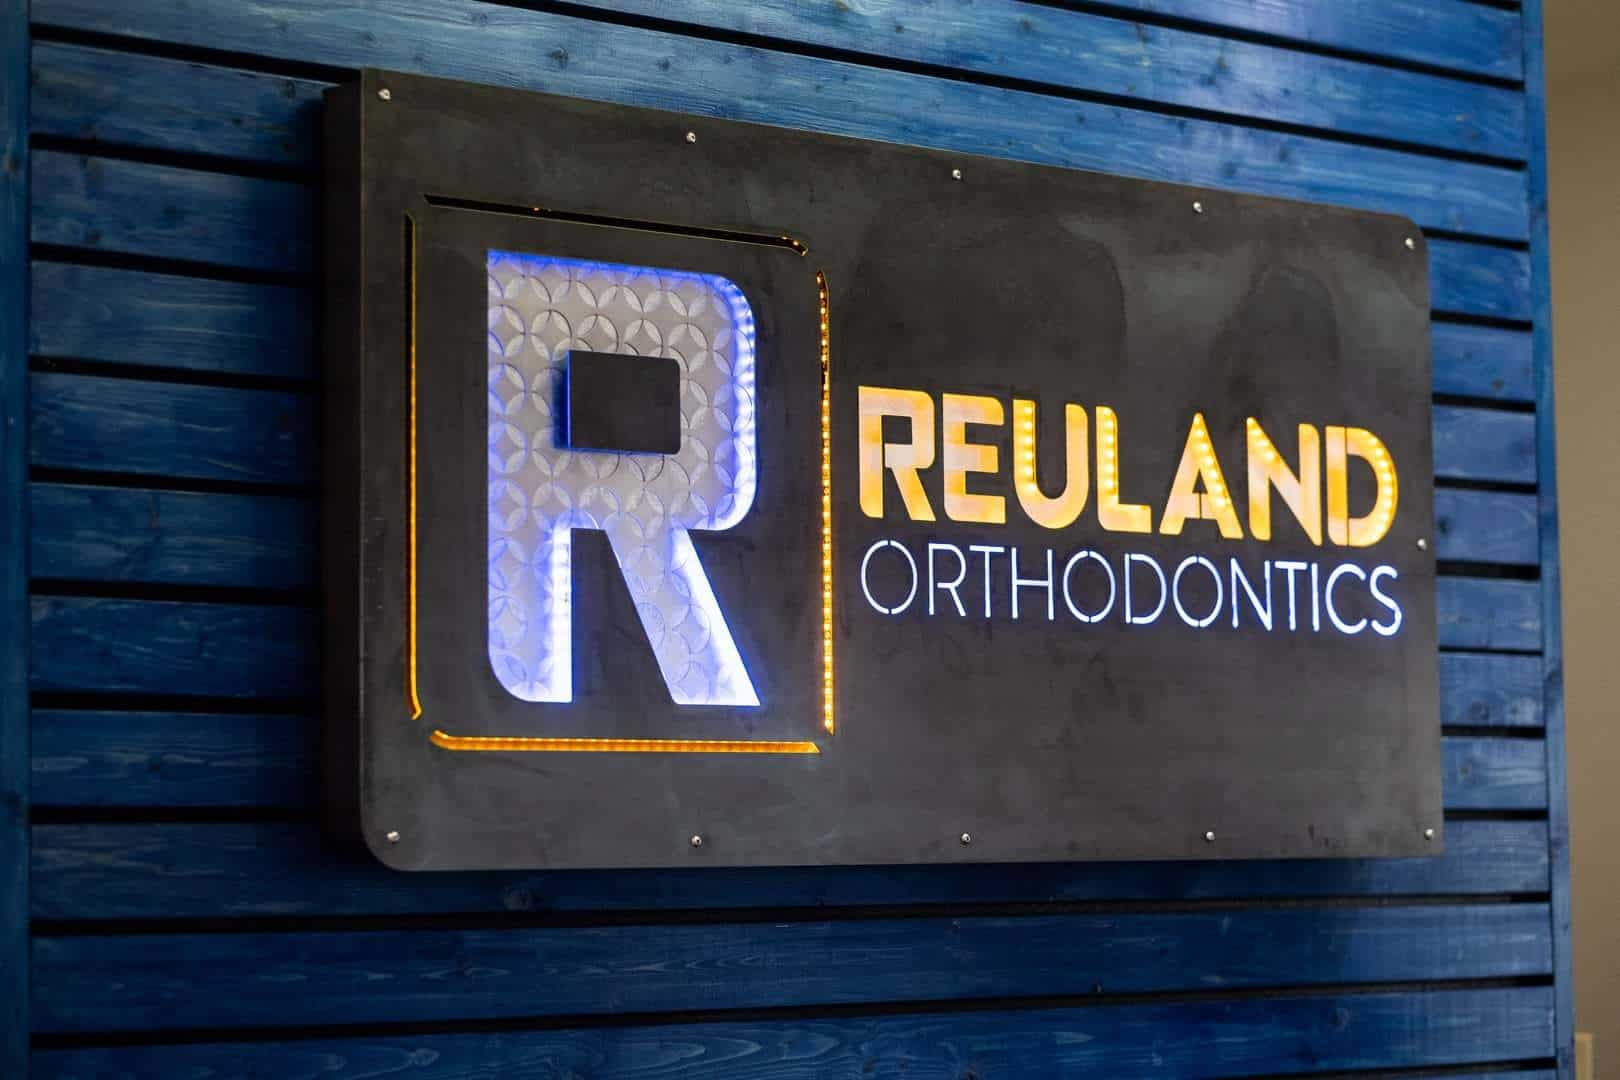 Random Reuland Orthodontics 2018 4 - Contact Us